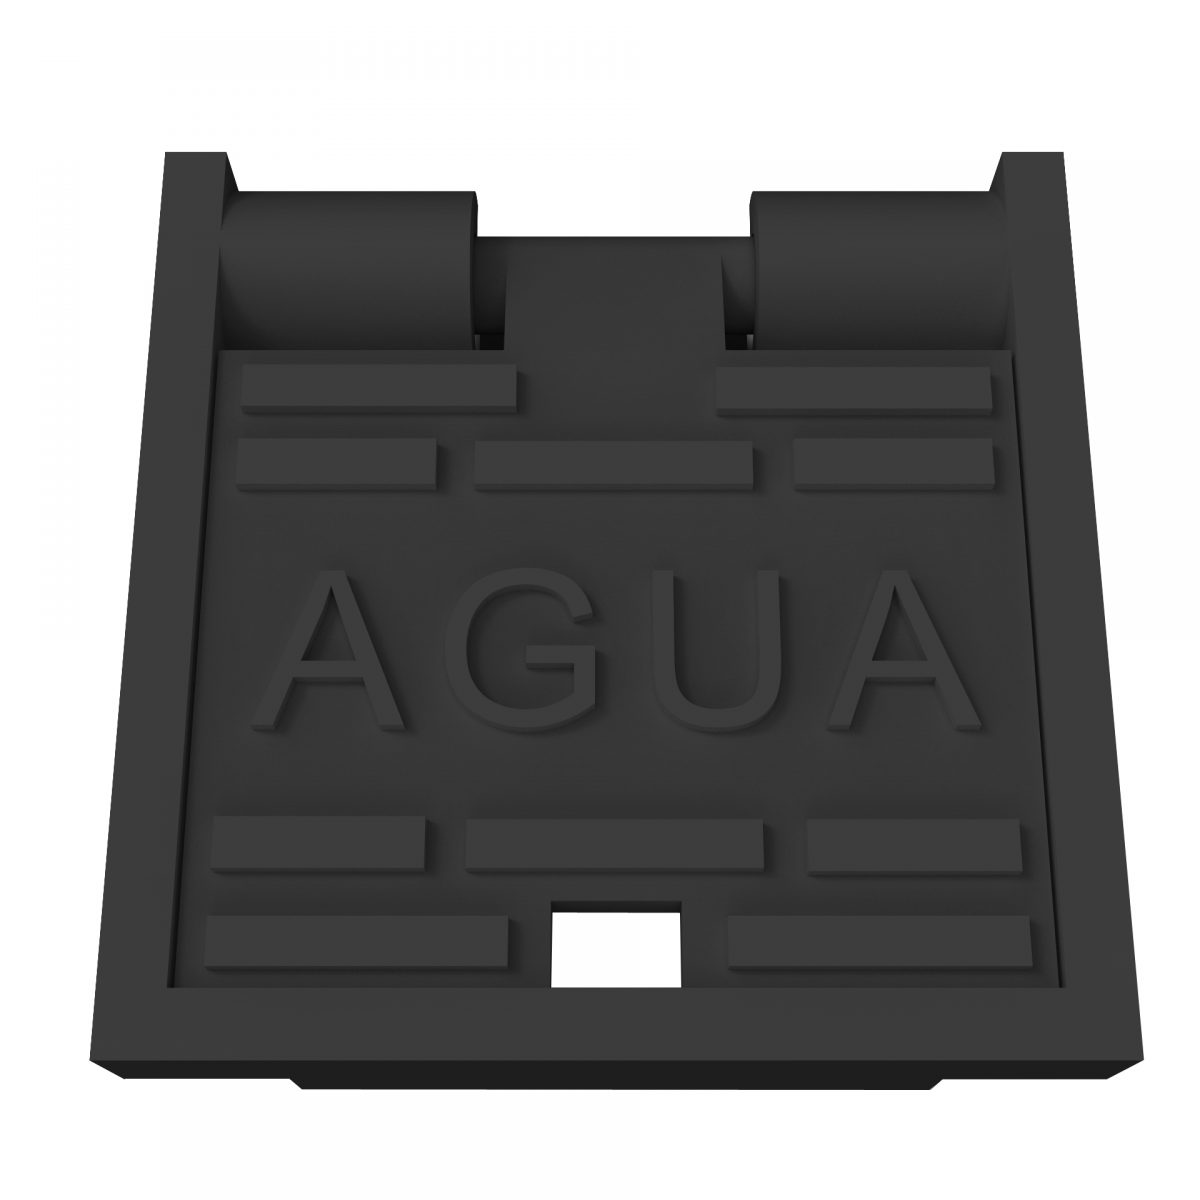 sc 1 st  Grup Fábregas & Folding Waters Manhole Cover trap door and gully grating trap D-77